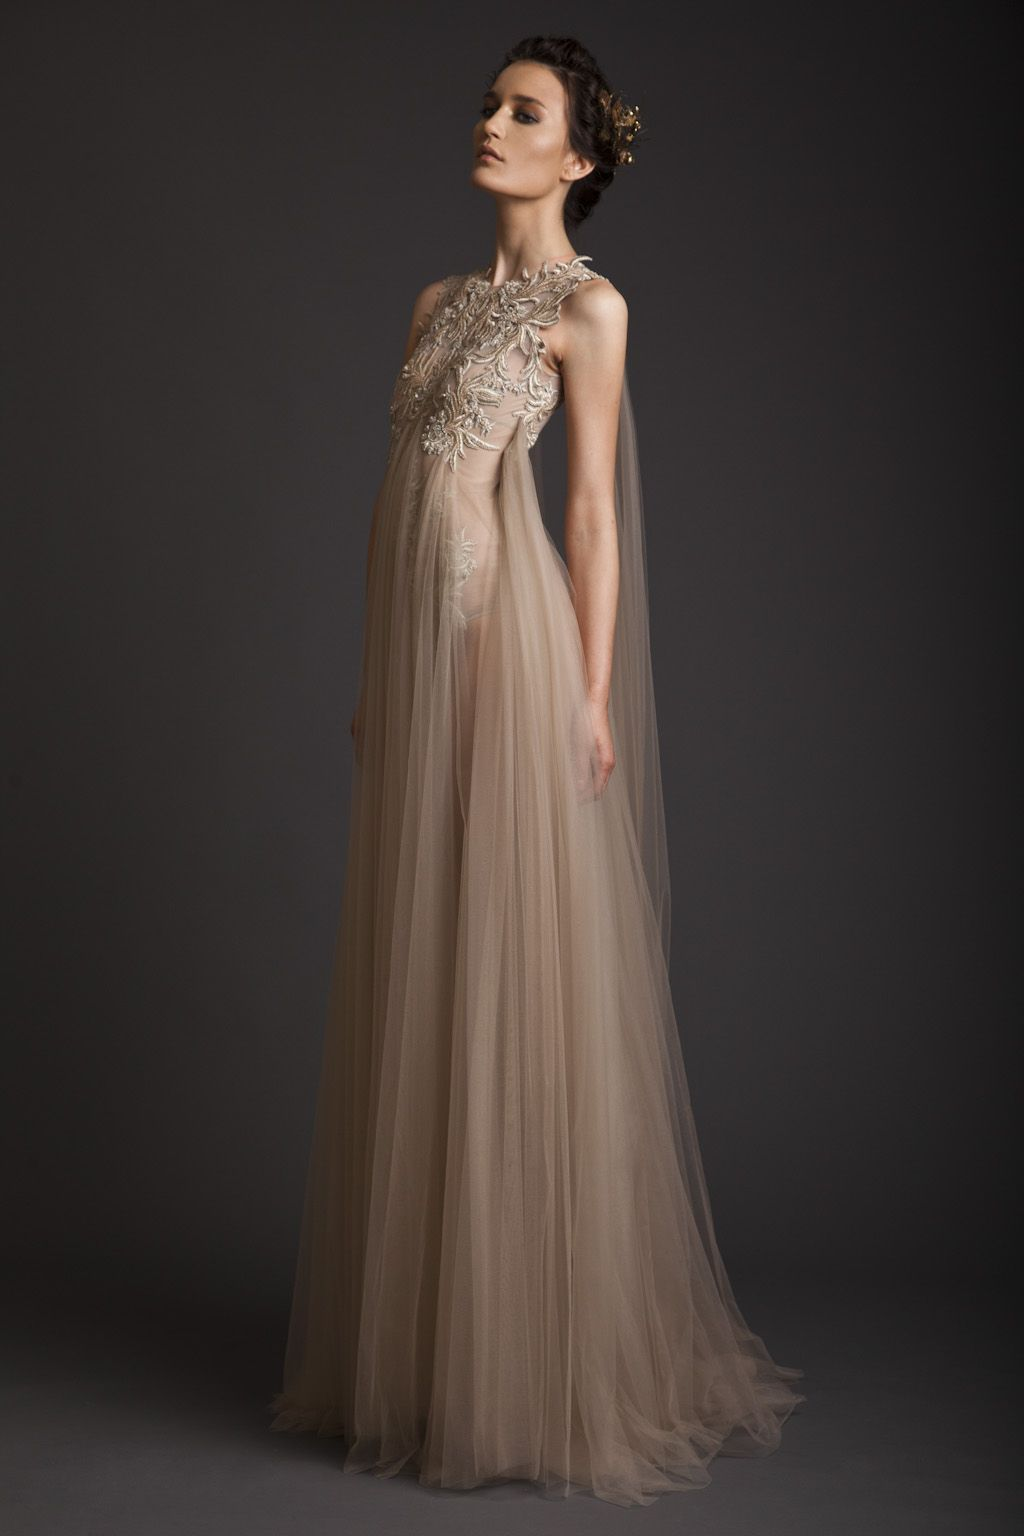 Image result for ethereal dresses | Lady Mary | Pinterest | Ethereal ...